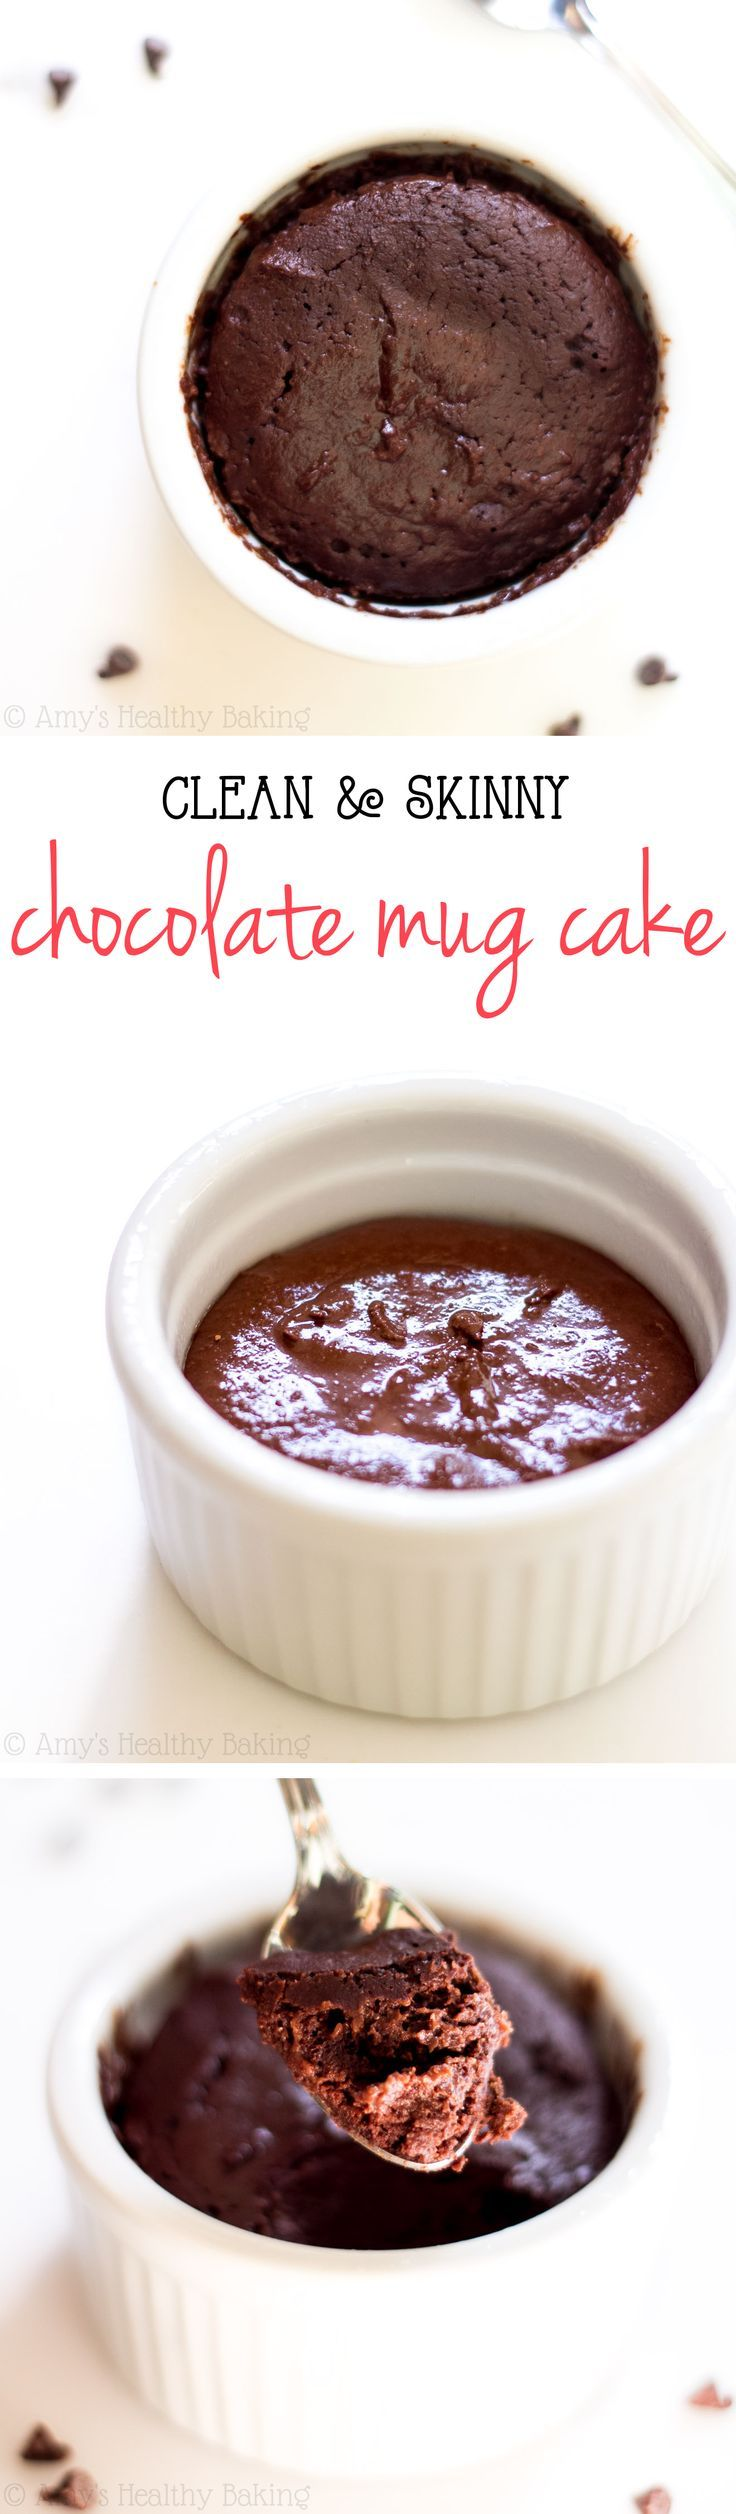 Skinny Single-Serving Chocolate Mug Cake -- a decadent recipe that's practically healthy enough for breakfast & ready in just 10 minutes! Barely 140 calories + 6g of protein!